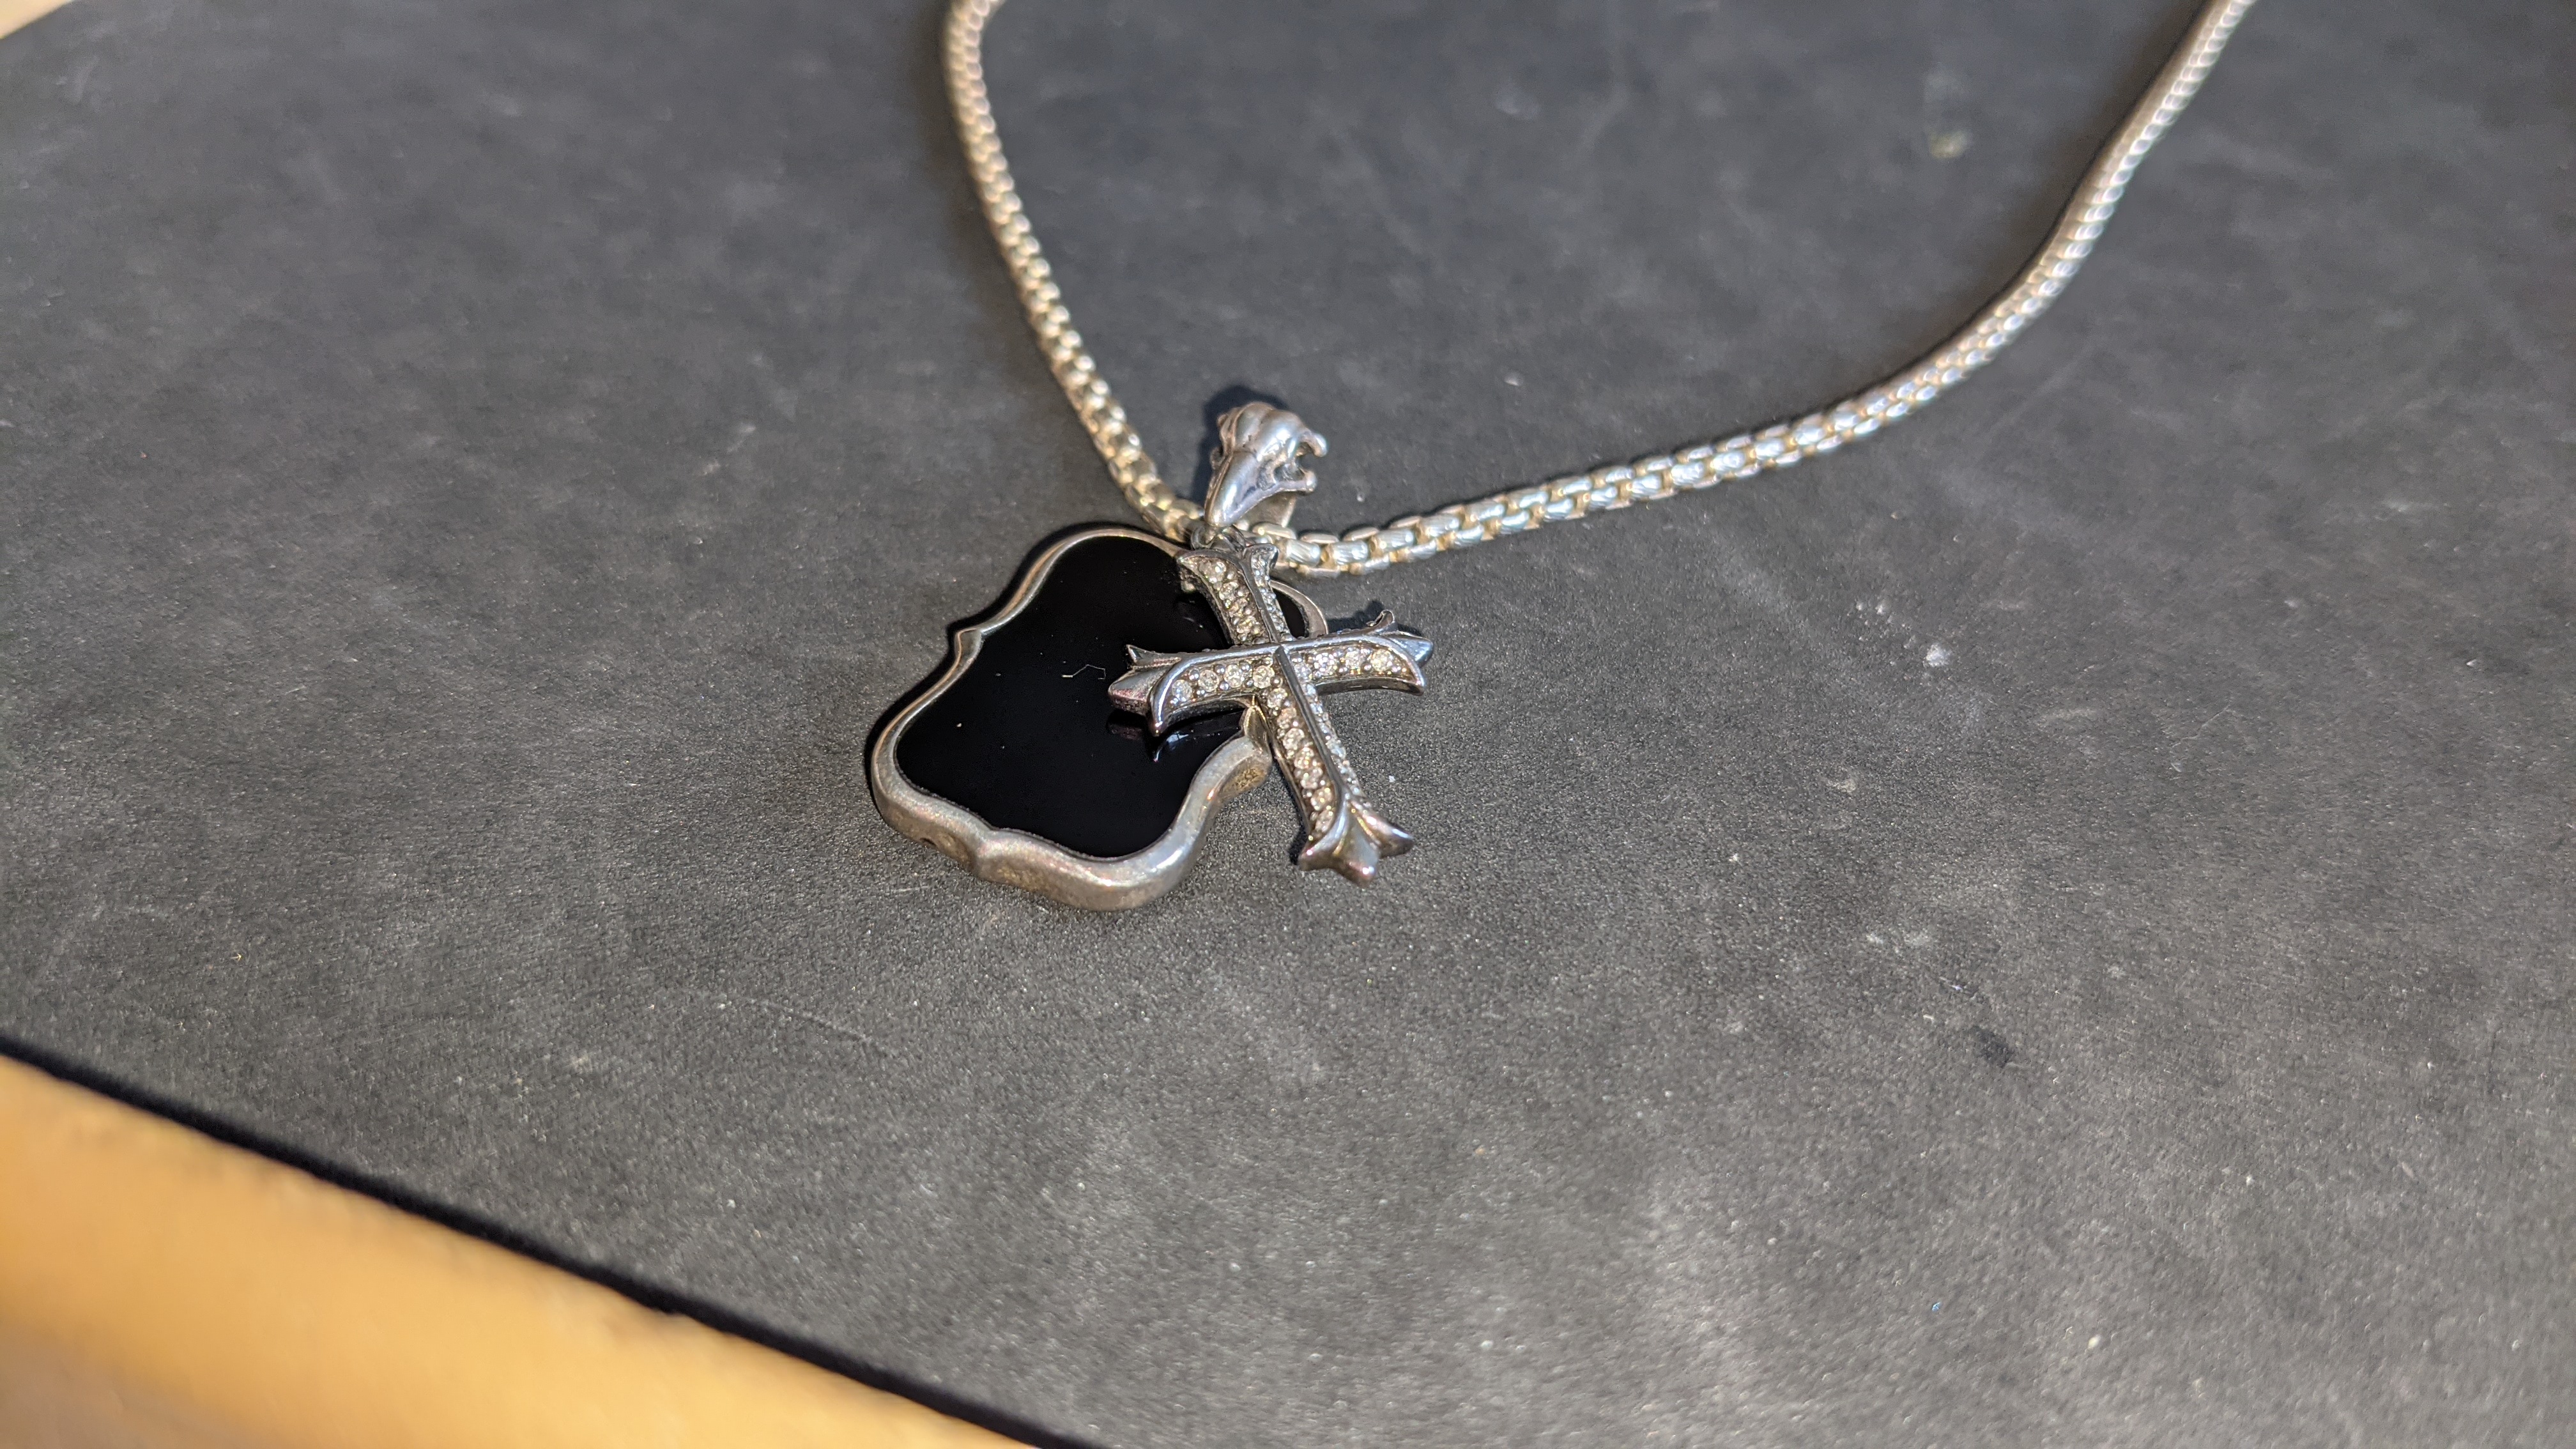 Silver gothic cross pendant on long chain RRP £489 - Image 7 of 12